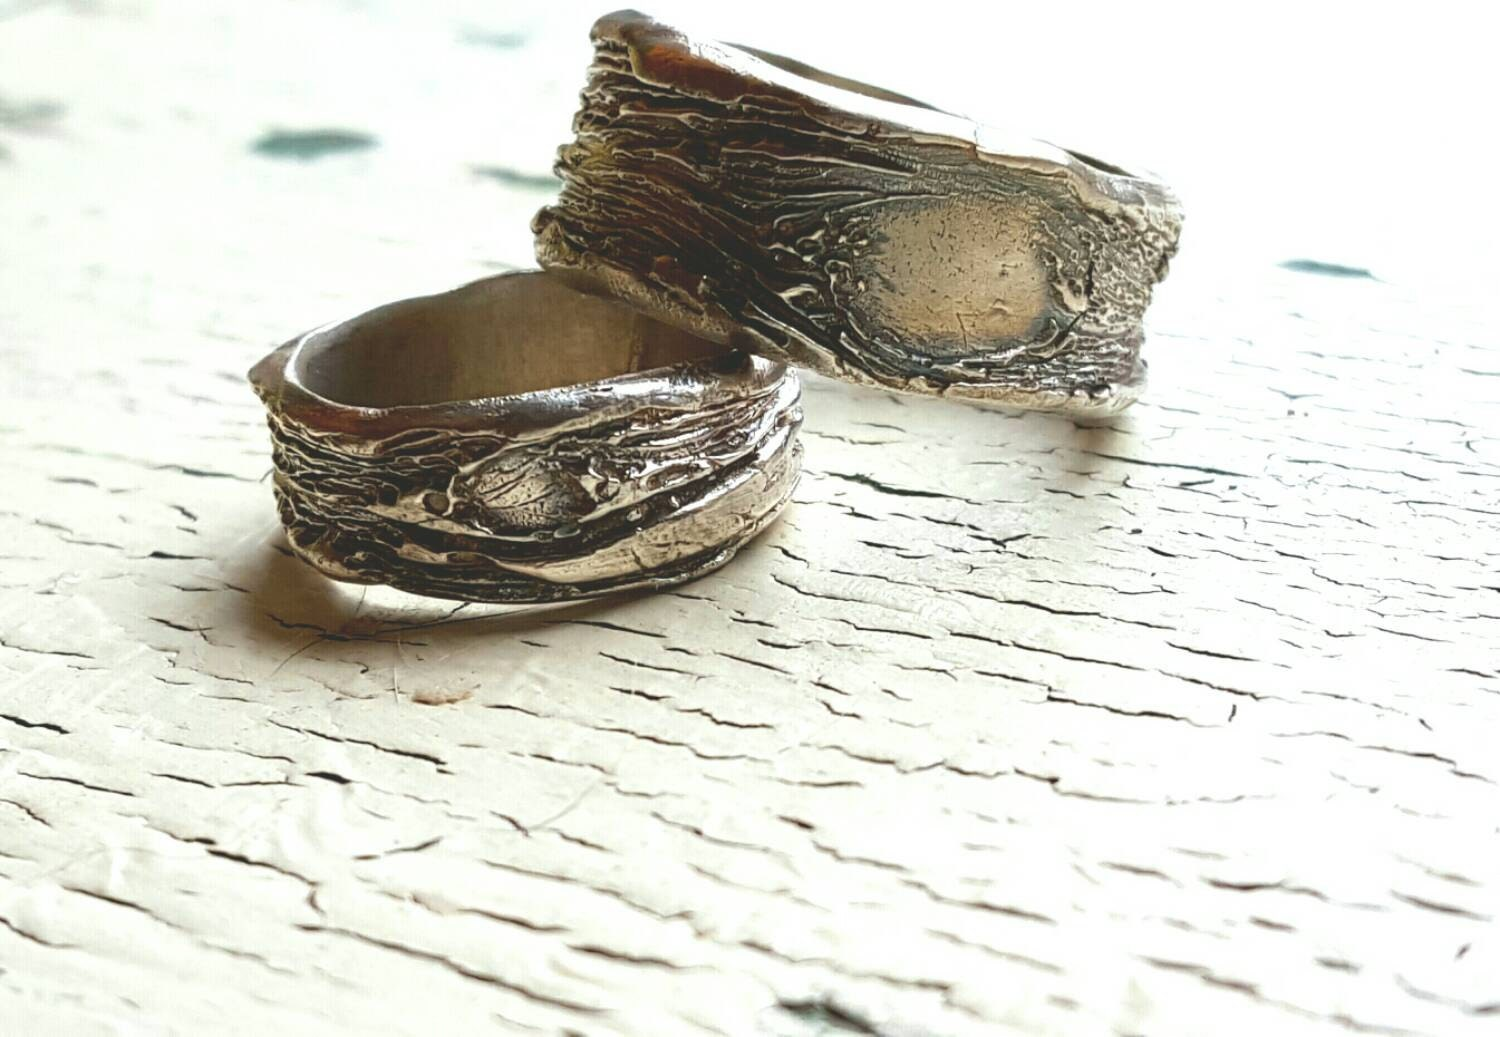 his and hers rings mudding wedding rings Wedding Rings Tree Bark His and Hers Set Recycled Silver Unique Primitive Nature Unisex LGBTQ Couples BIG and LITTLE Tree Knot Bands